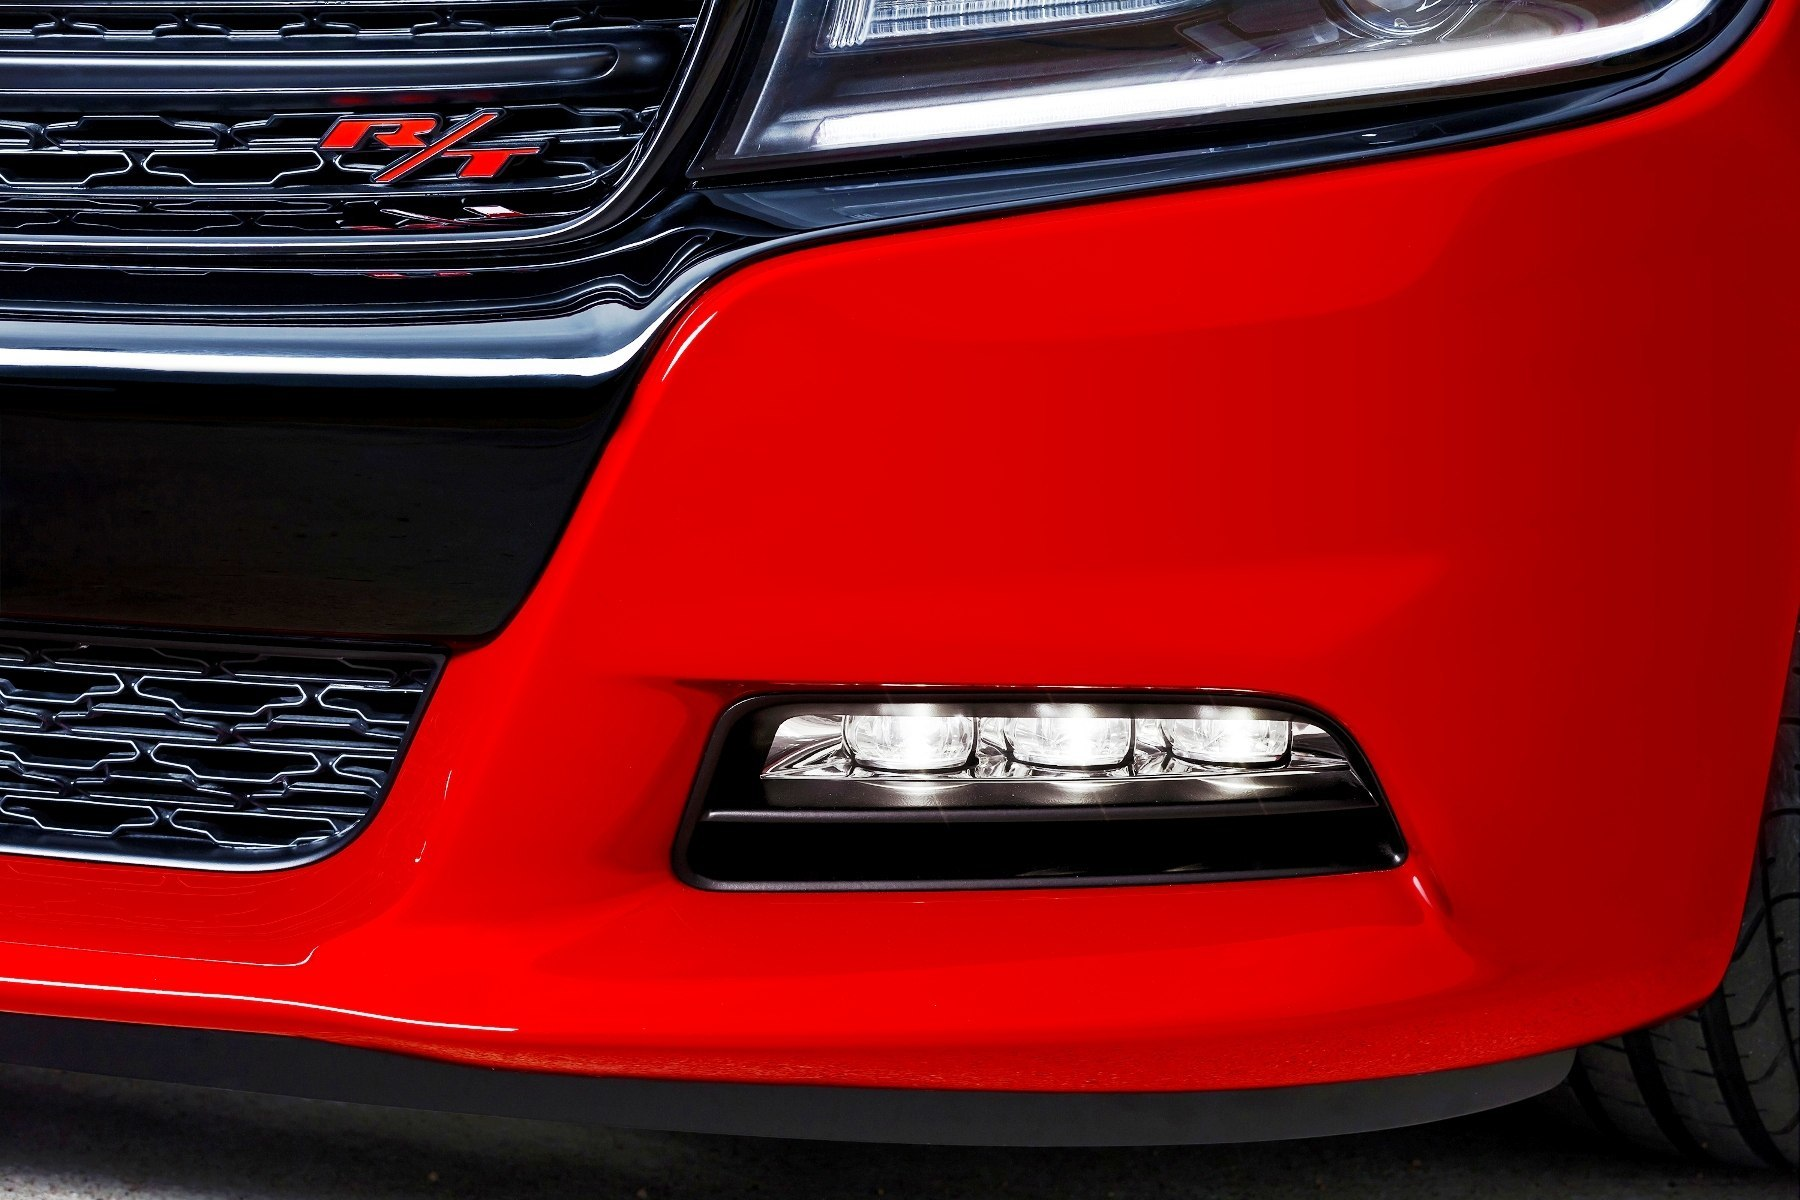 Car Lots In Houston >> Houston Auto Show - 2015 Dodge Charger